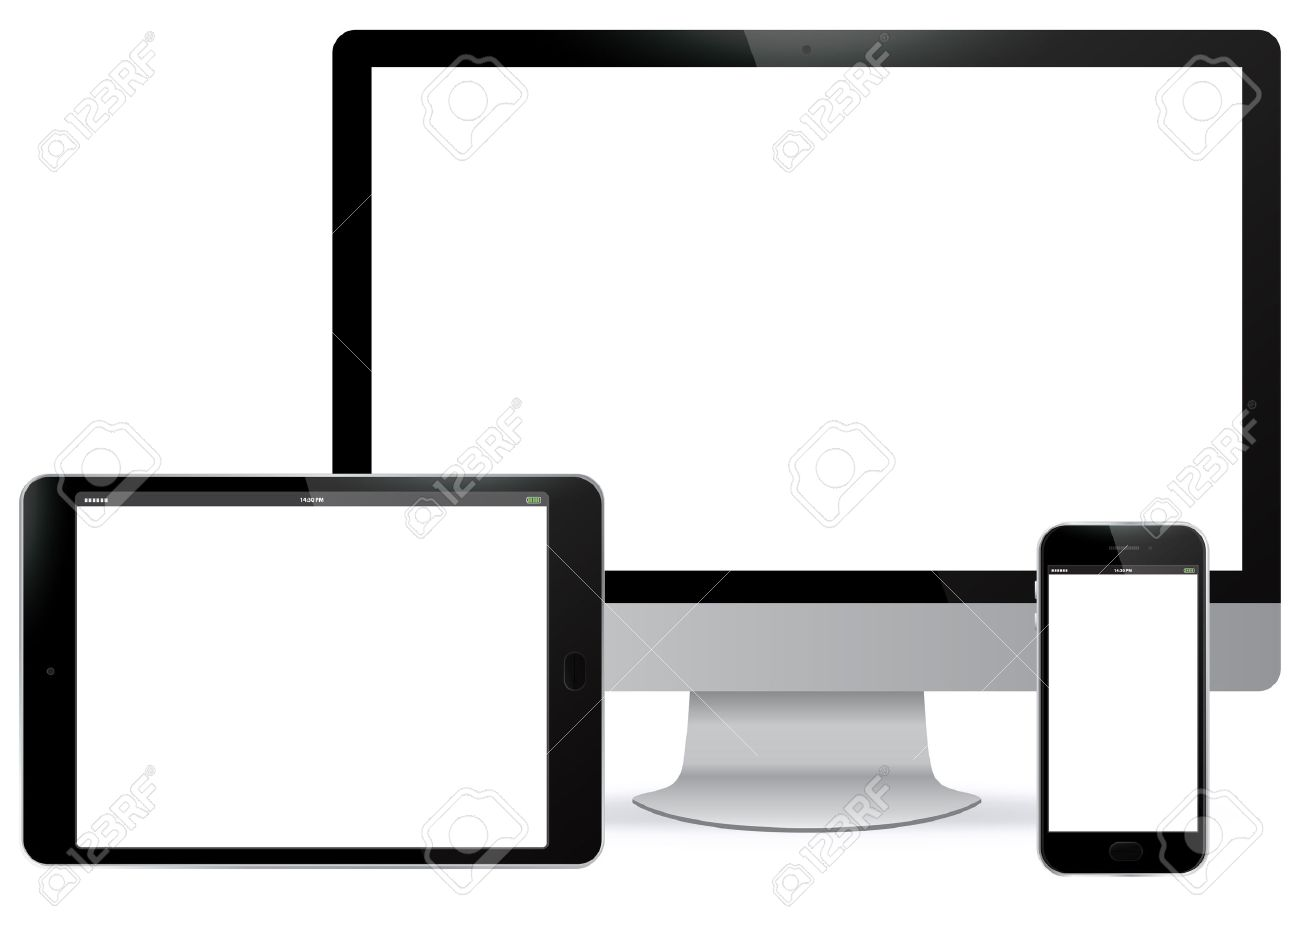 tablet clipart black and white. computer screen, tablet pc, mobile phone vector illustration. stock - 47210863 clipart black and white